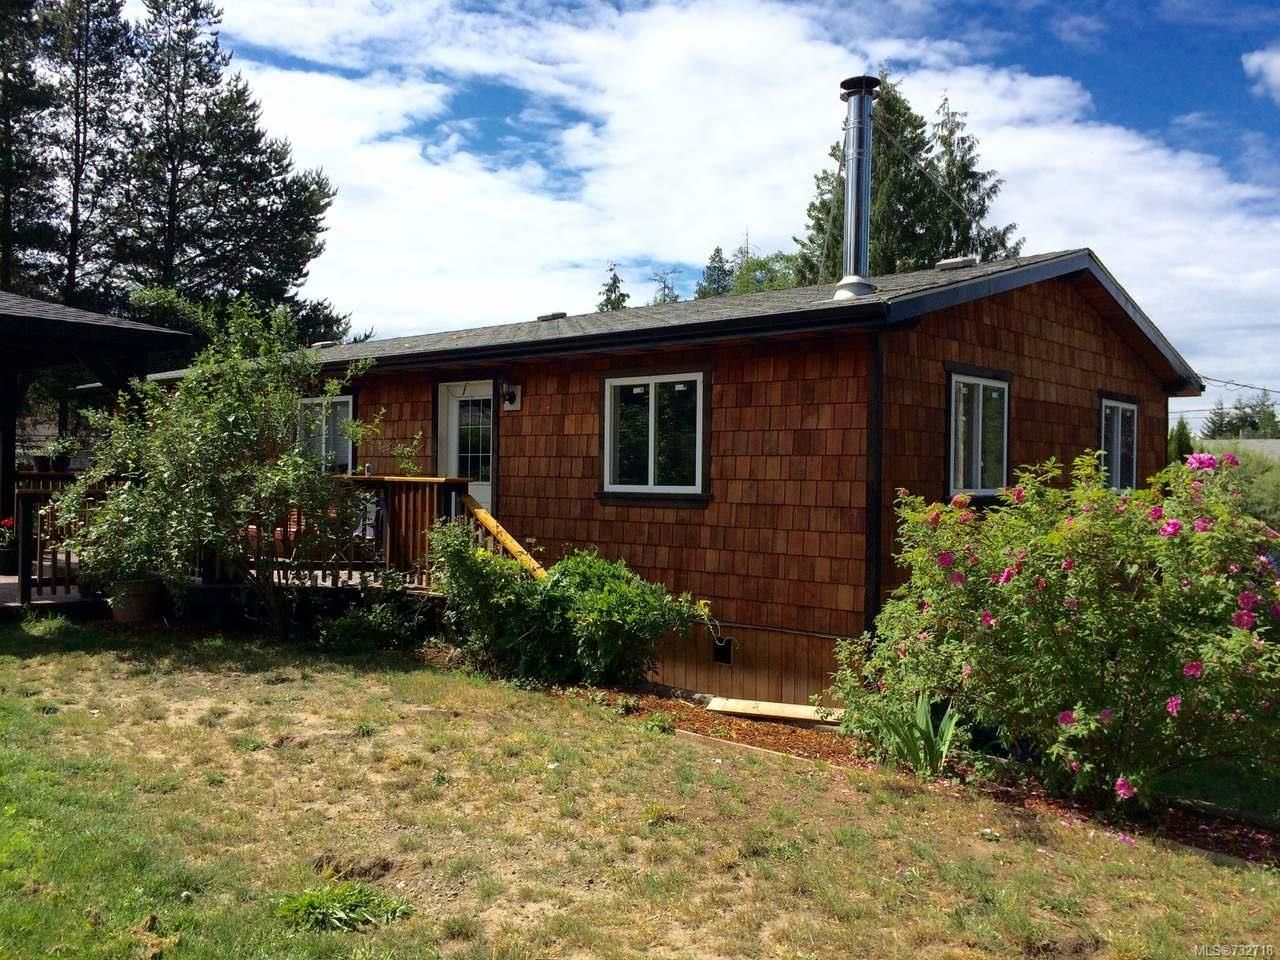 Photo 32: Photos: 921 POPLAR Way in ERRINGTON: PQ Errington/Coombs/Hilliers Manufactured Home for sale (Parksville/Qualicum)  : MLS®# 732718